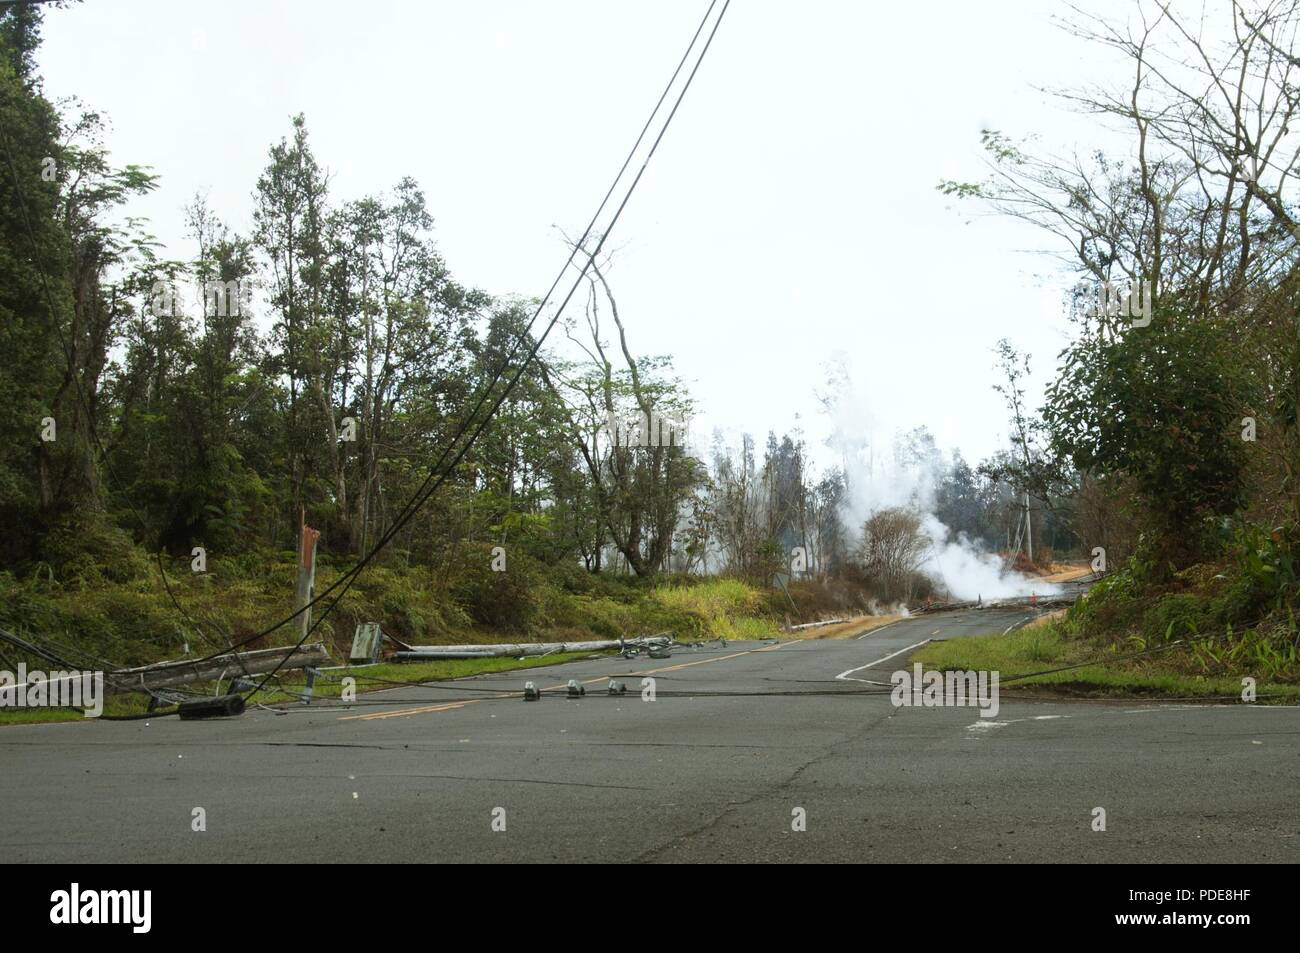 Damaged telephone lines littered residential roads in Leilani estates May 16, 2018, on Hawaii Island. The telephone lines had fallen after they suffered damage during volcanic activity on the island. - Stock Image